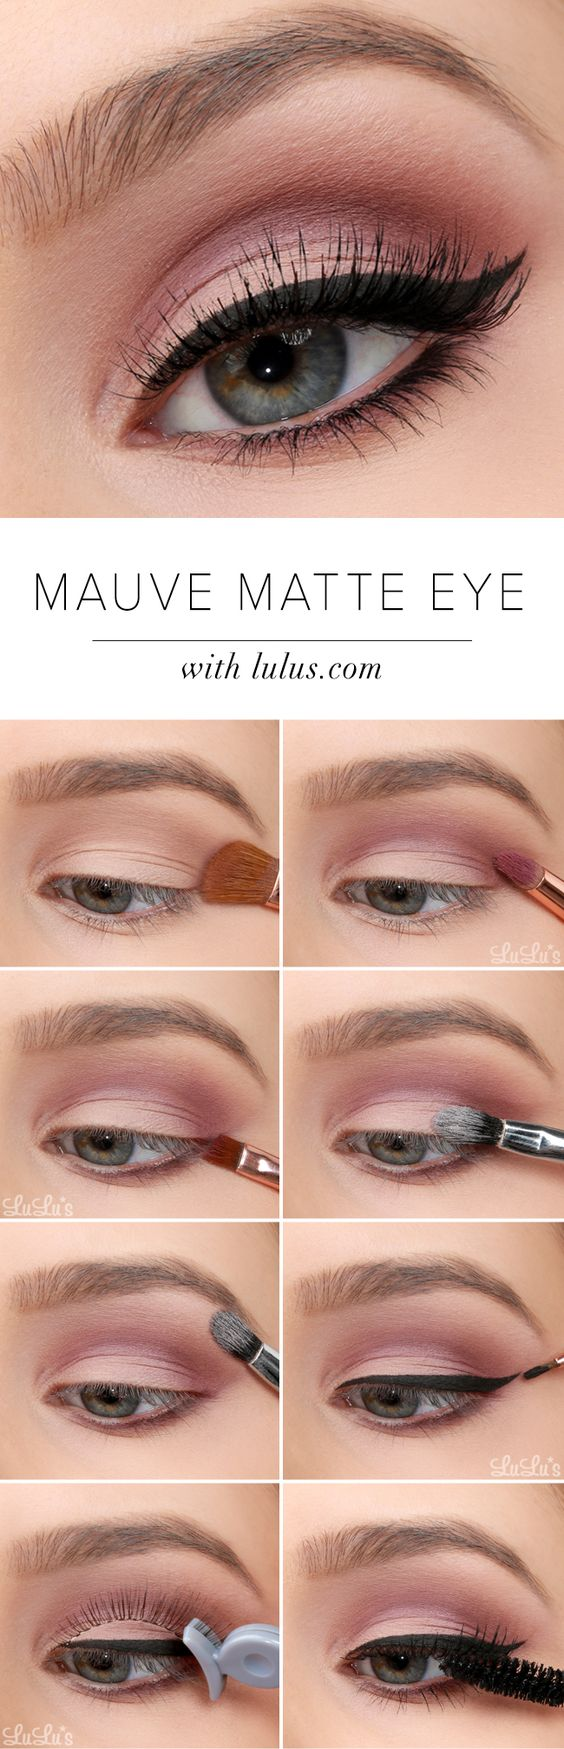 Easy Step By Step Makeup Tutorials For Beginners